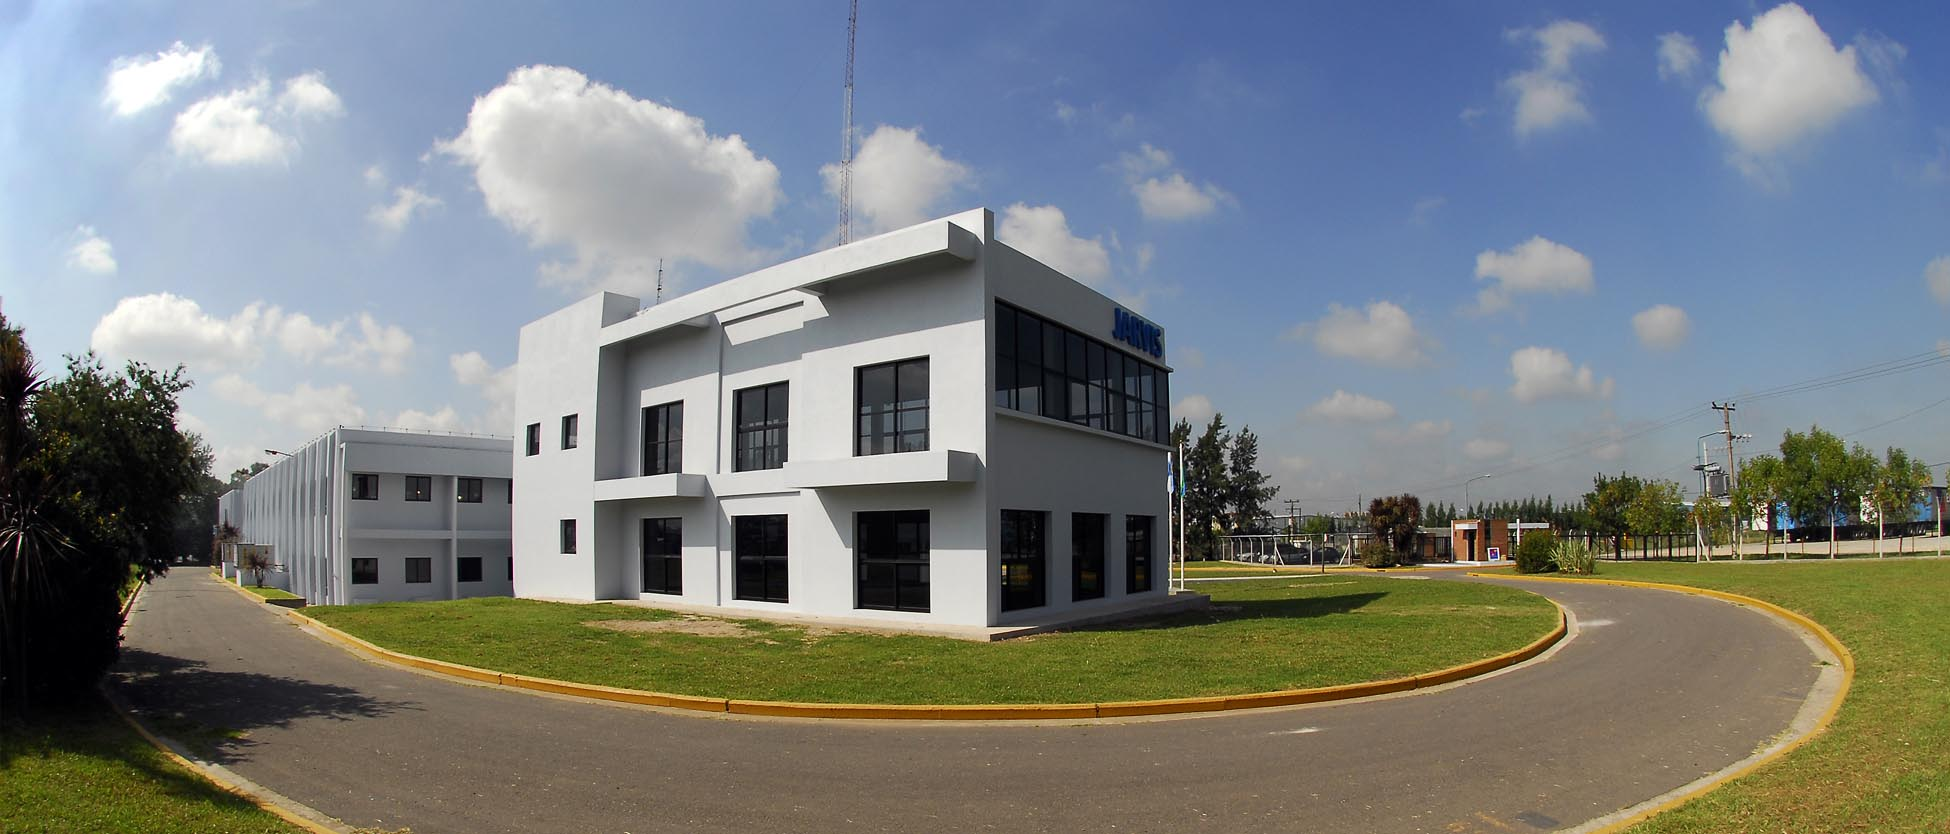 Edificio Laboratorio de Jarvis